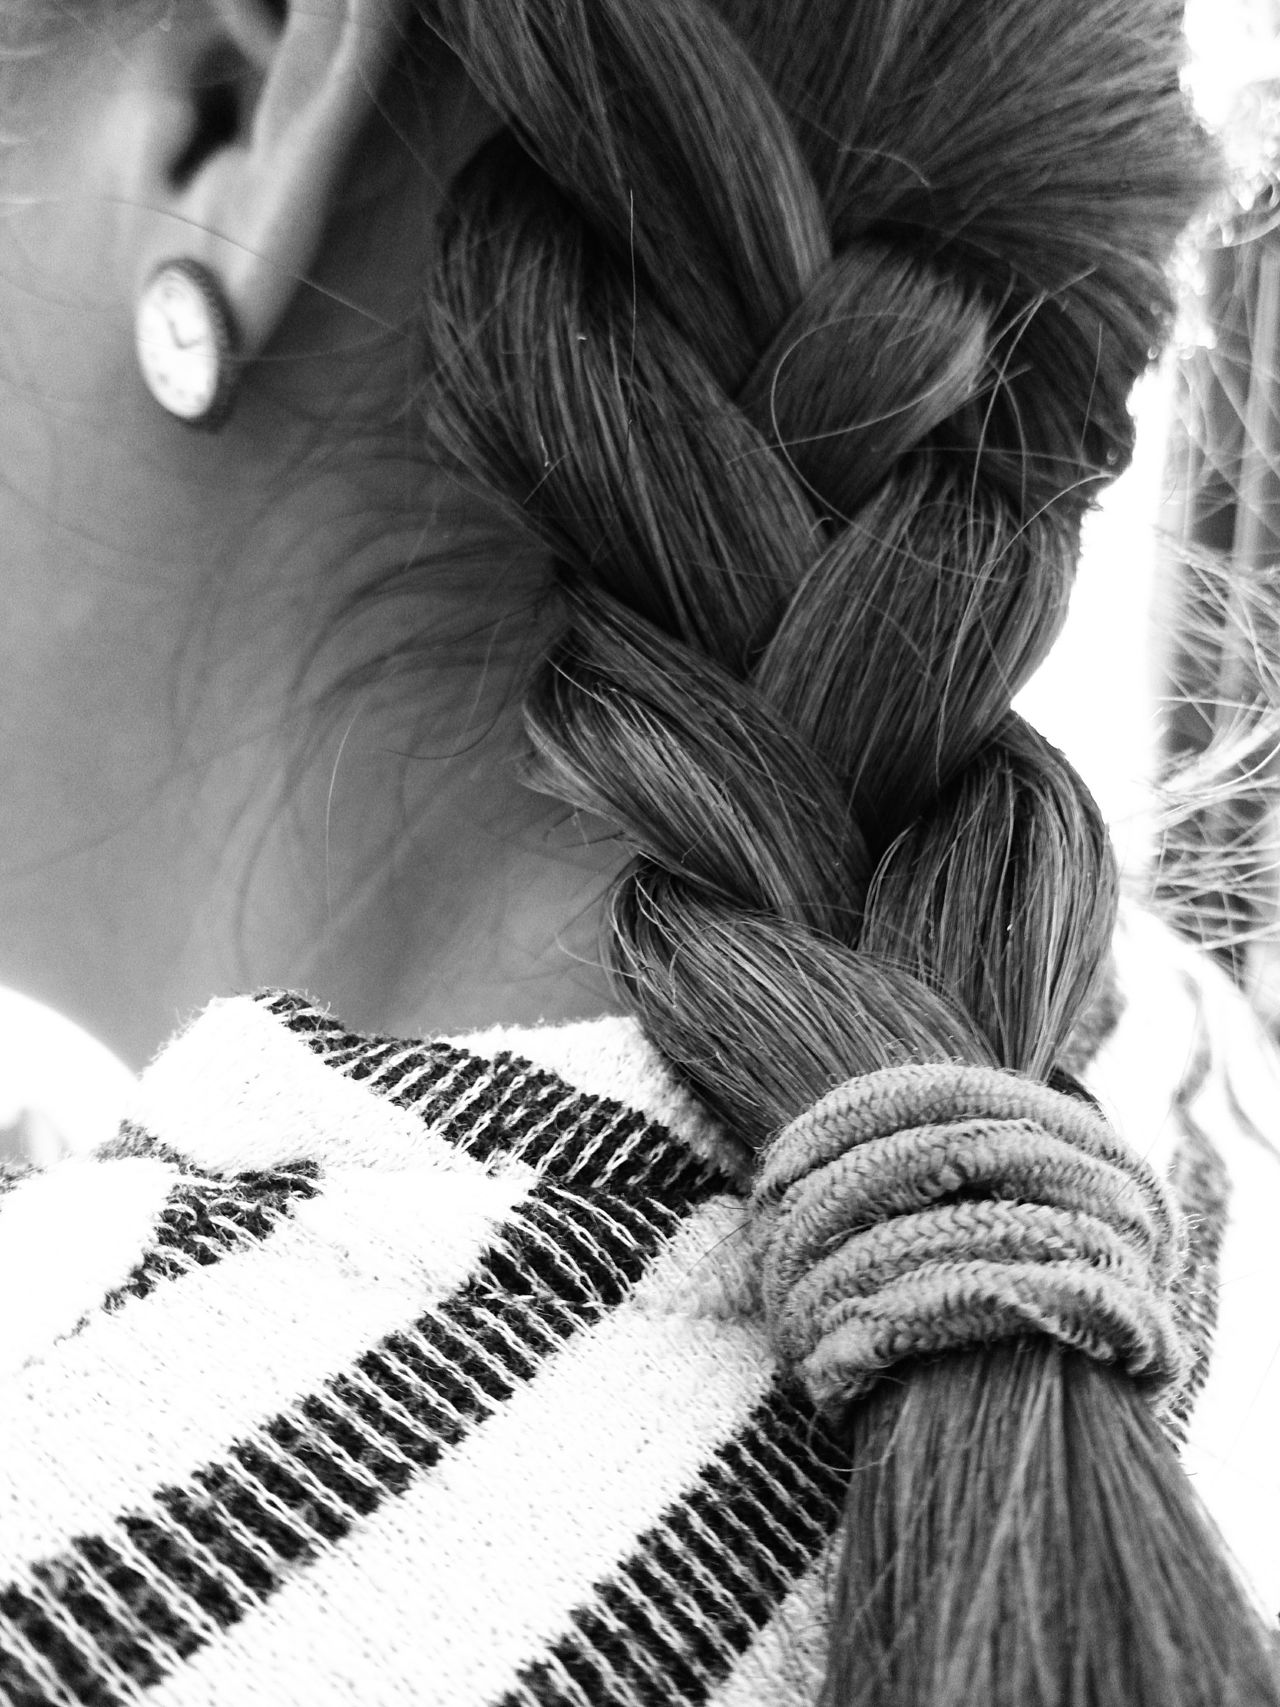 Braided hair. B&w Black And White Braided Hair Close-up Day Hairstyle Human Body Part Mobile Photography One Person Outdoors Xperia ZL